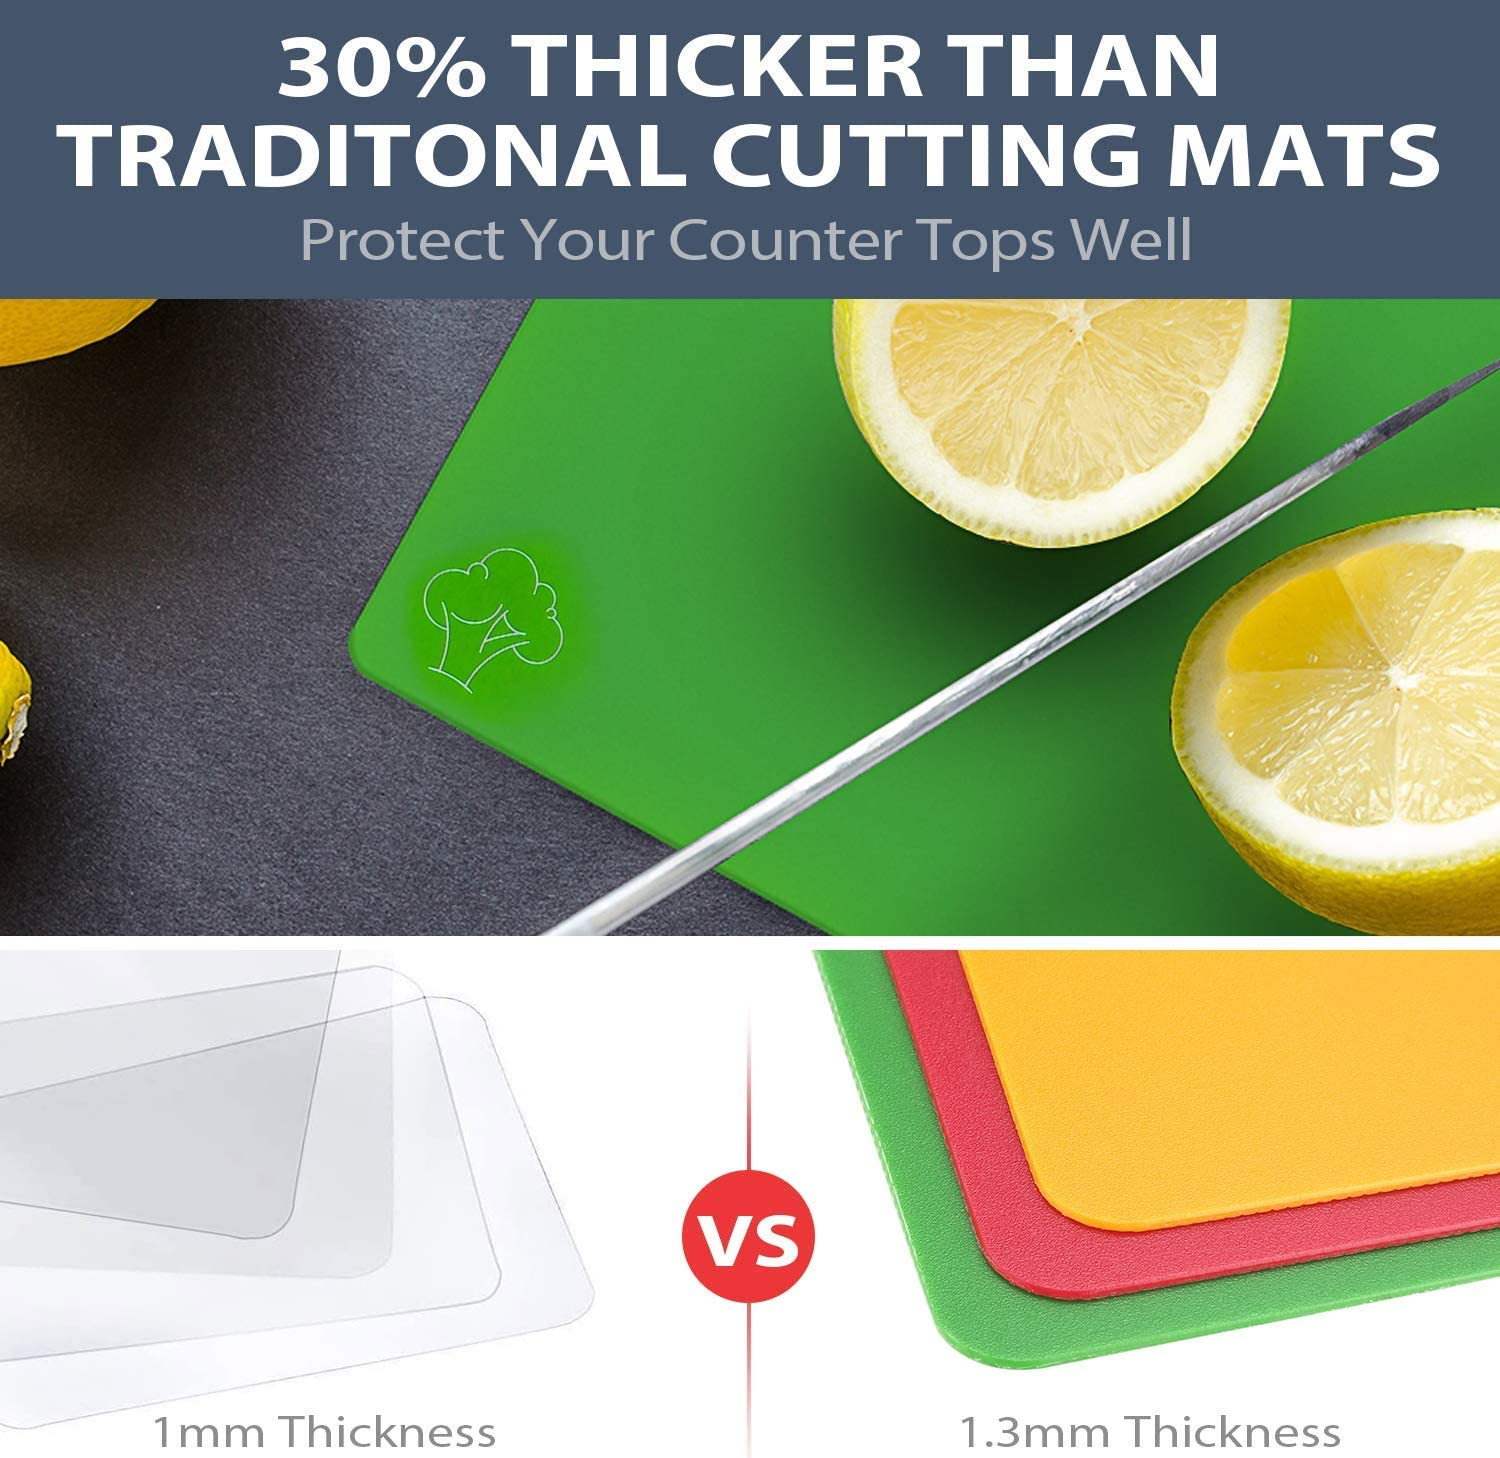 Flexible Plastic Cutting Board Mats Set for Kitchen, Thicker Cutting Sheets with Dishwasher Friendly, No-Porous, BPA-Free, EZ-Grip Handle (Set of 6 Colorful Food Icons) by CHIENTUNG